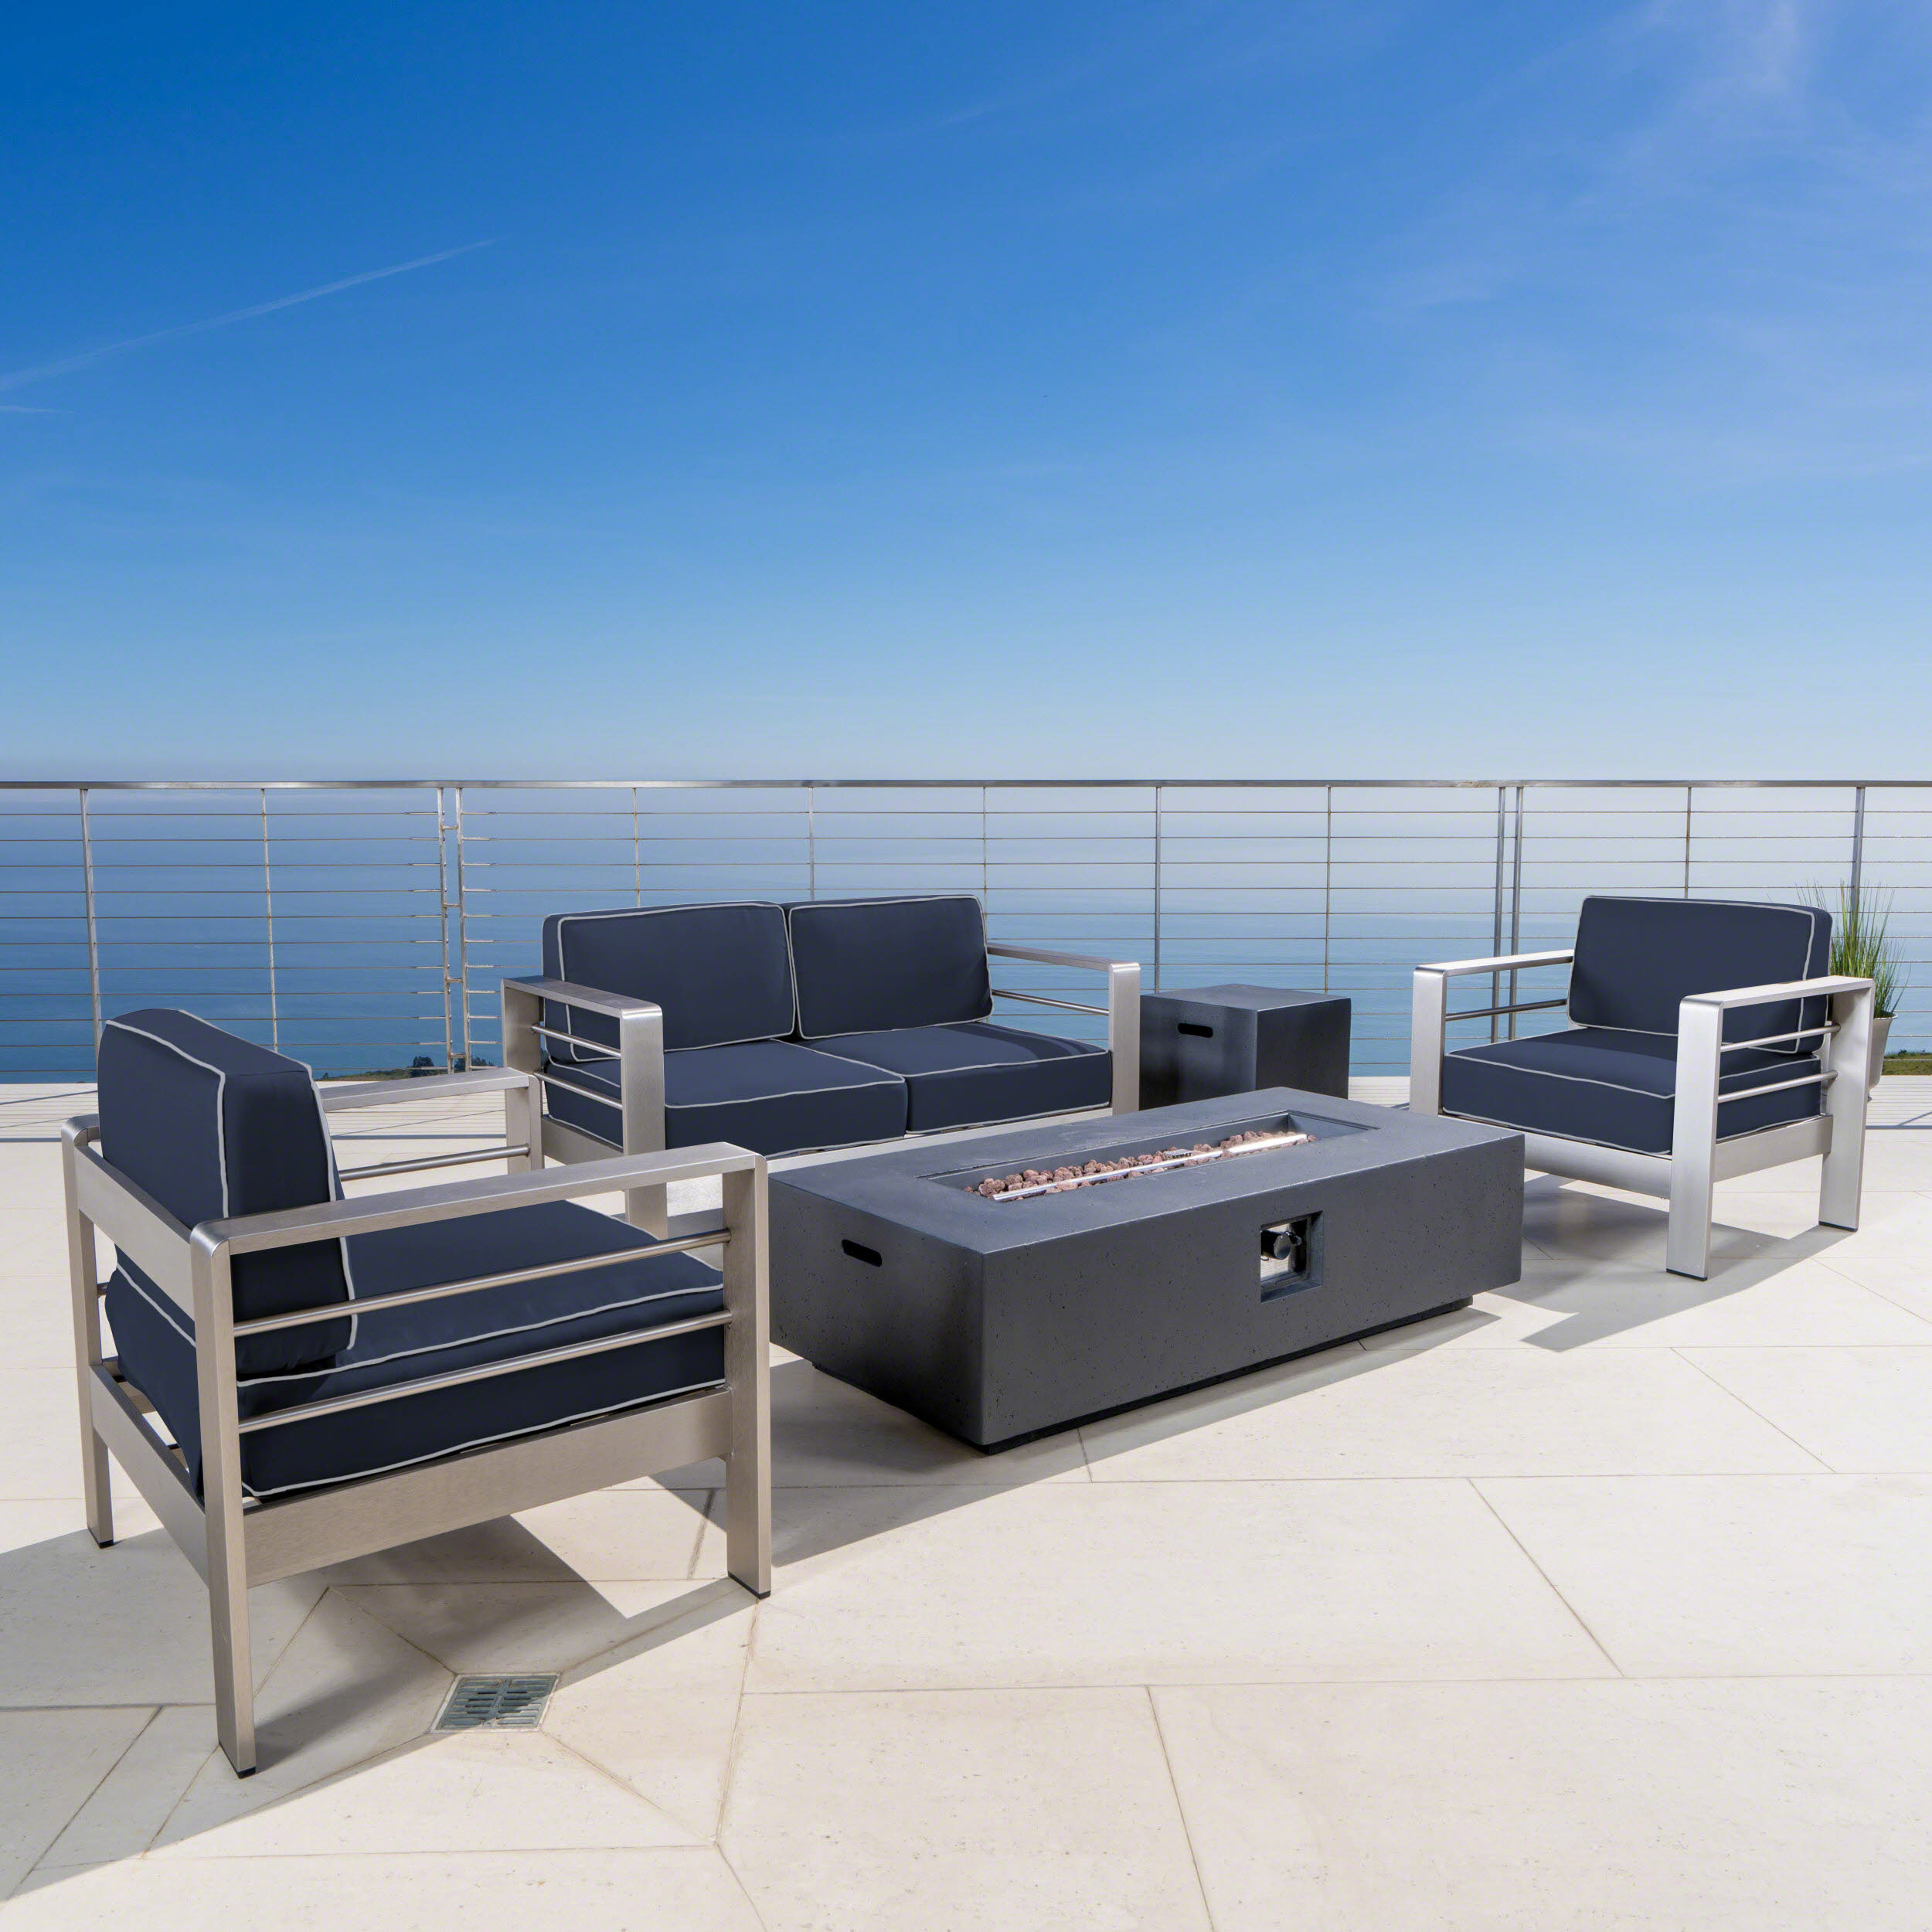 Cybele Doris Outdoor 5 Piece Aluminum Chat Set with Sunbrella Cushions and Dark Grey Fire Pit, Canvas Navy